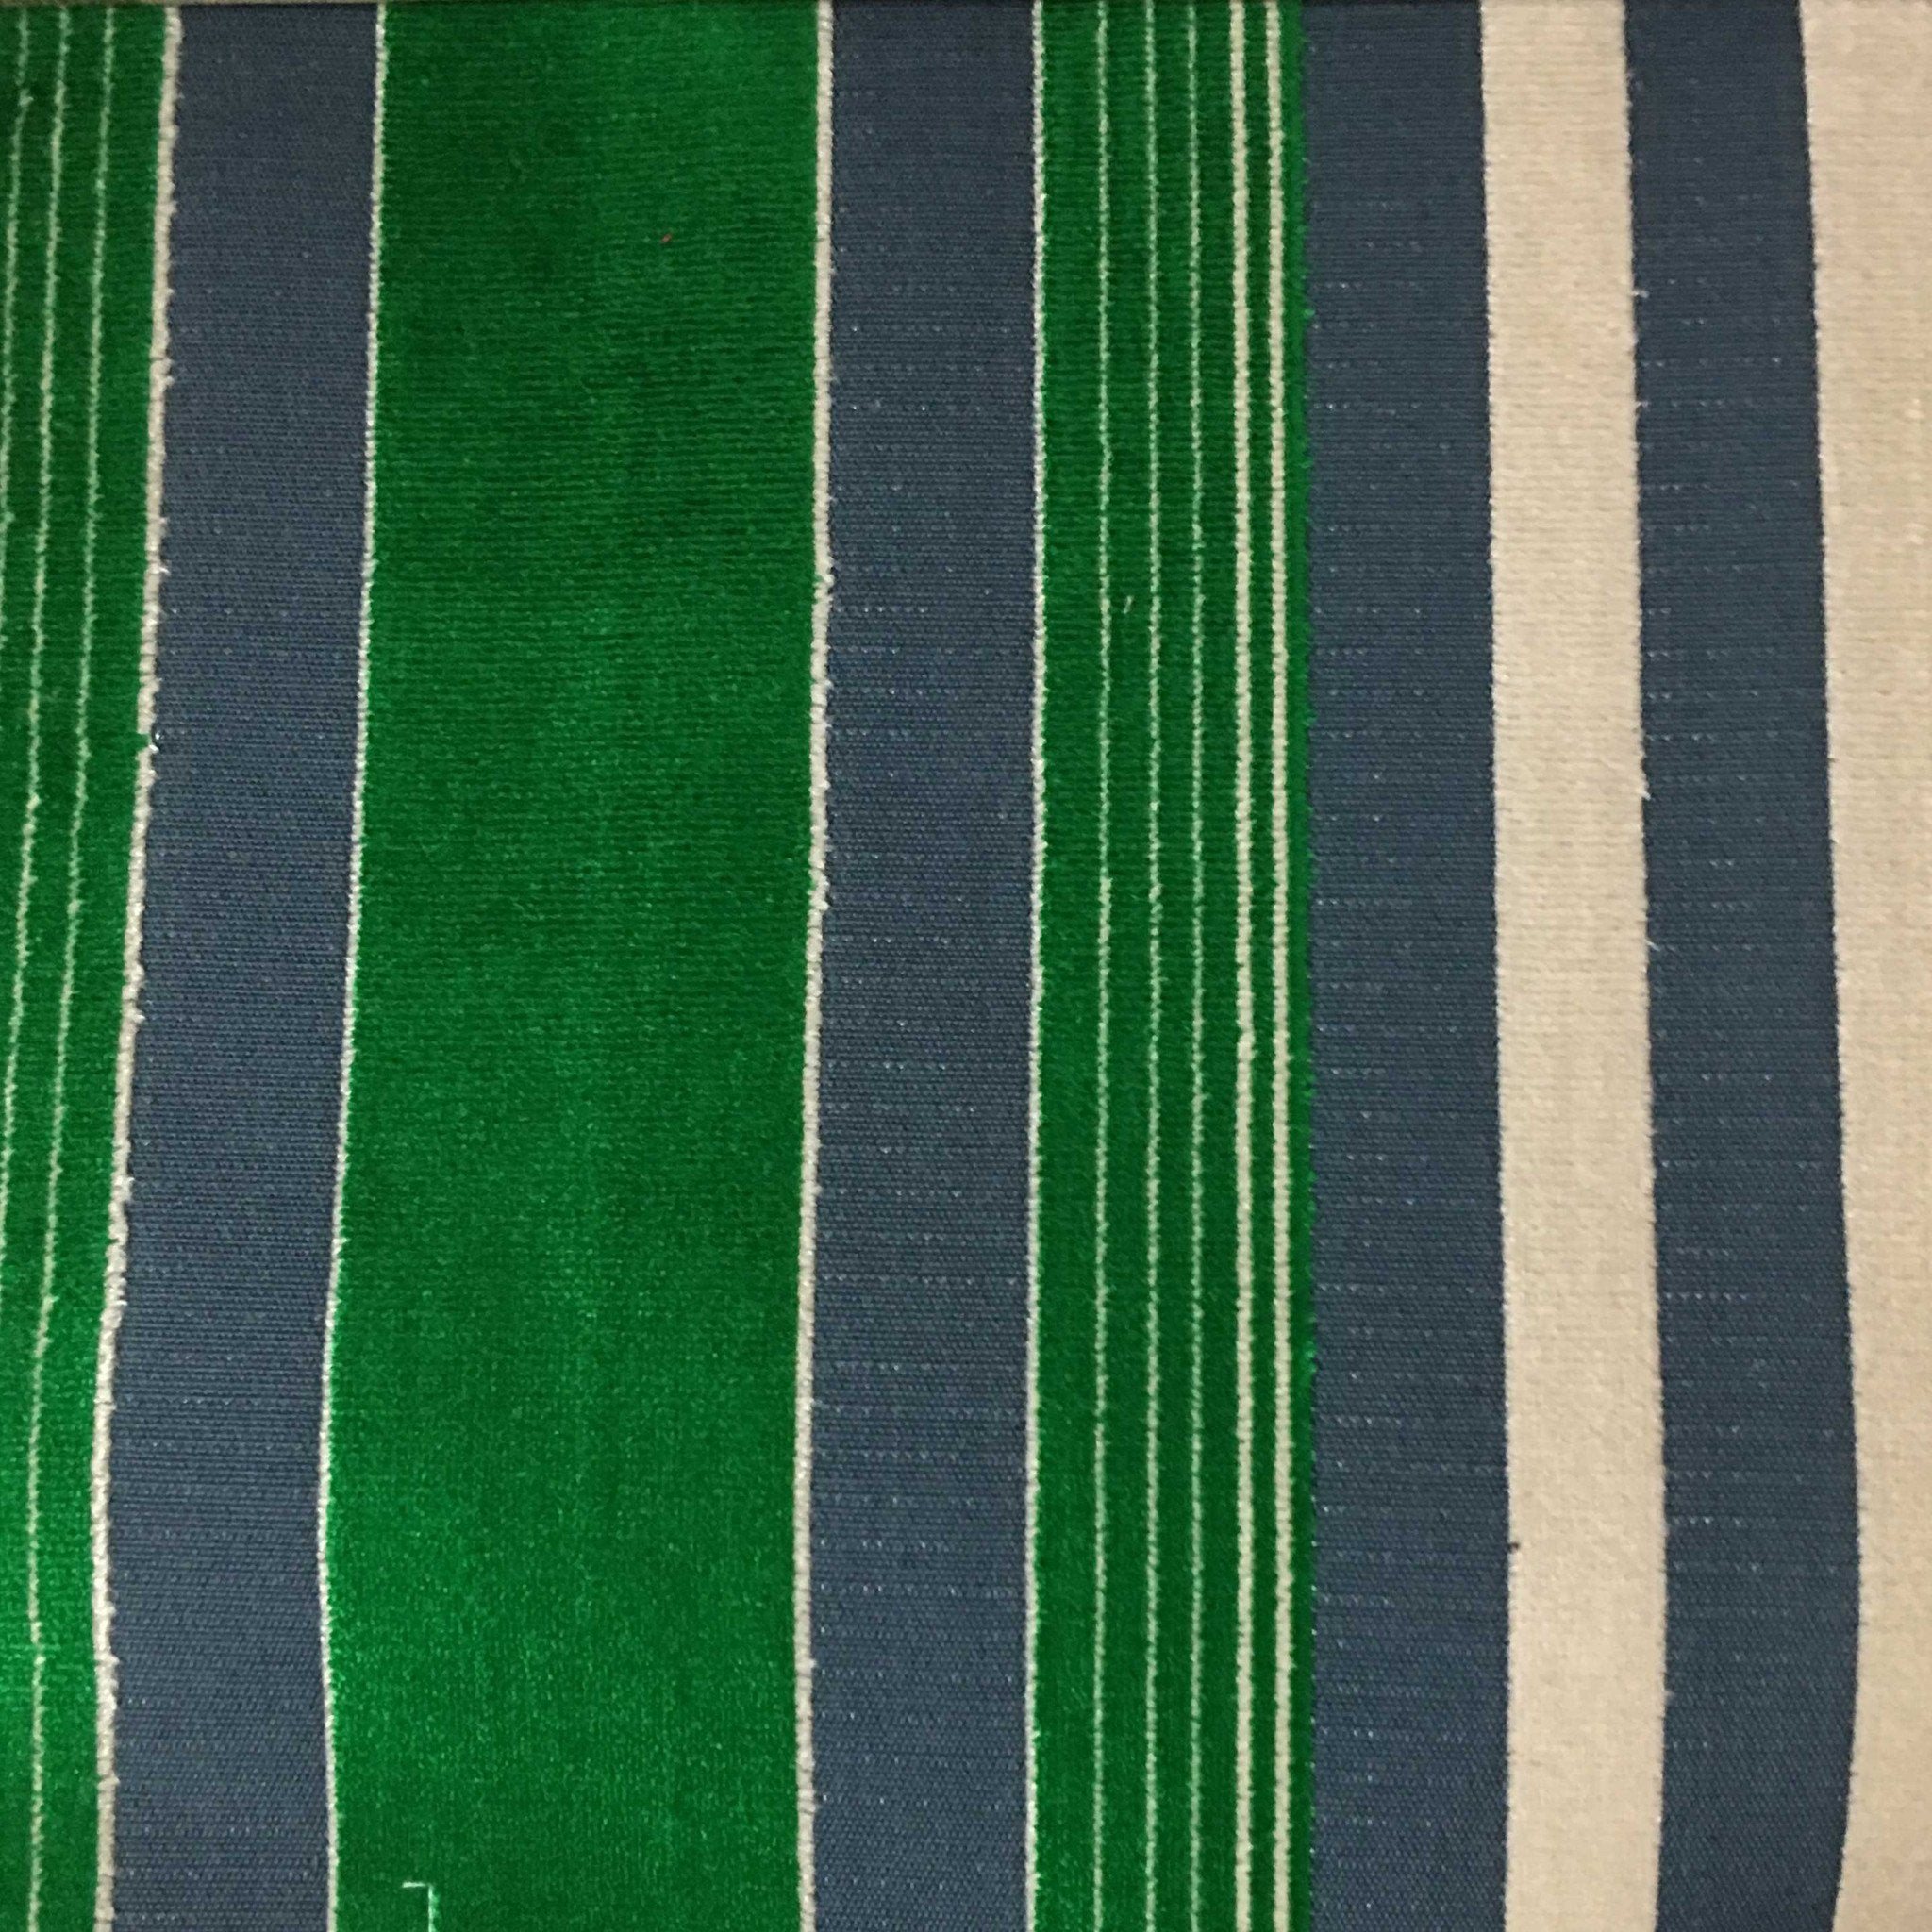 Richmond - Striped Cut Velvet Upholstery Fabric by the Yard- 12 Colors